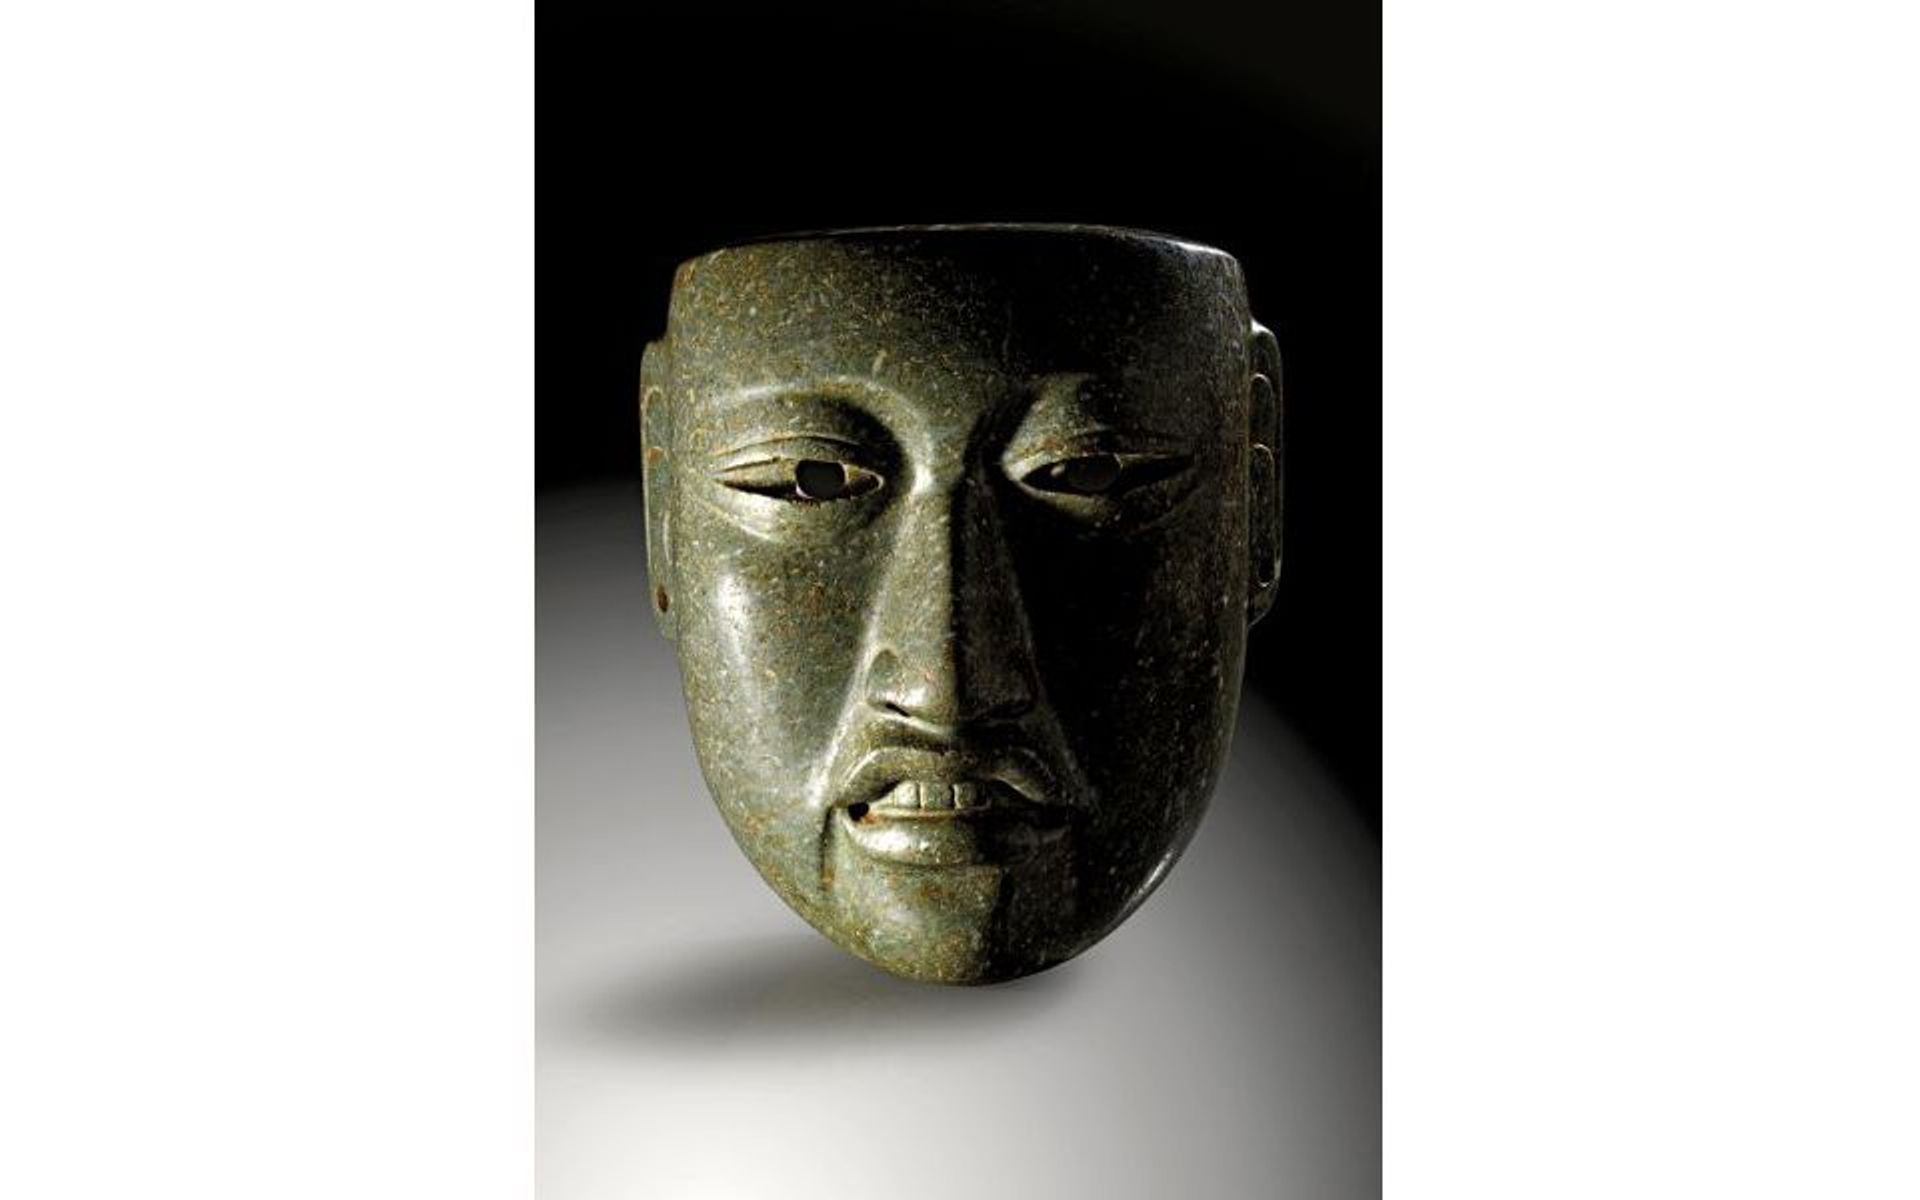 A green nephrite Olmec mask of a dignitary, around 1500-600 BC, offered for sale at Gerhard Hirsch Nachfolger, did not reach its reserve price